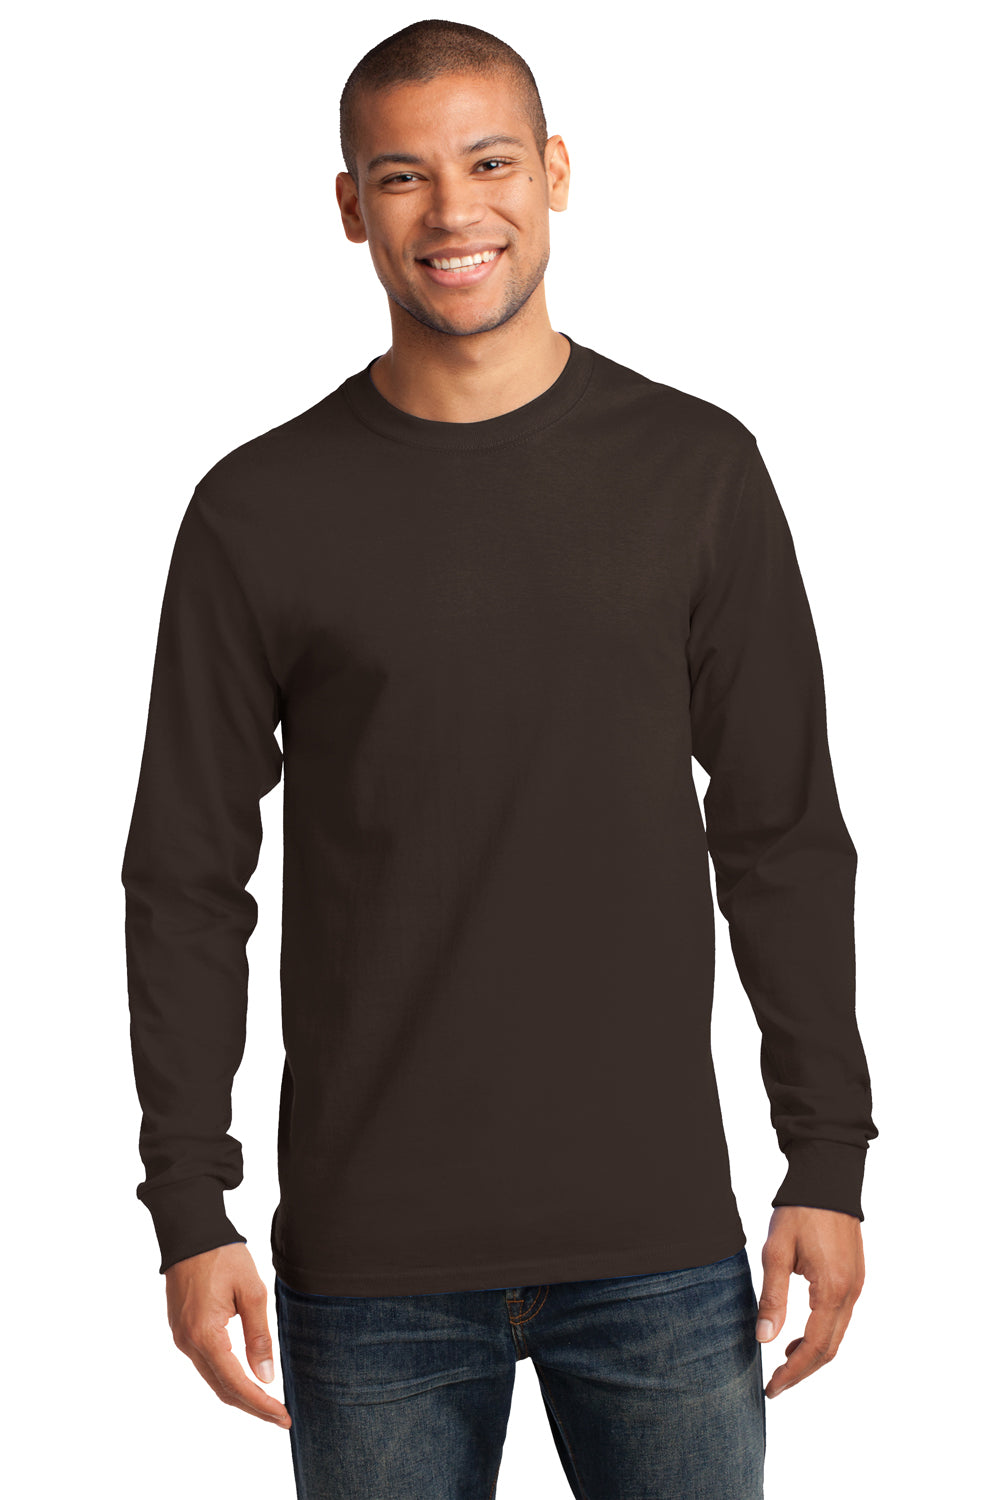 Port & Company PC61LS Mens Essential Long Sleeve Crewneck T-Shirt Chocolate Brown Front